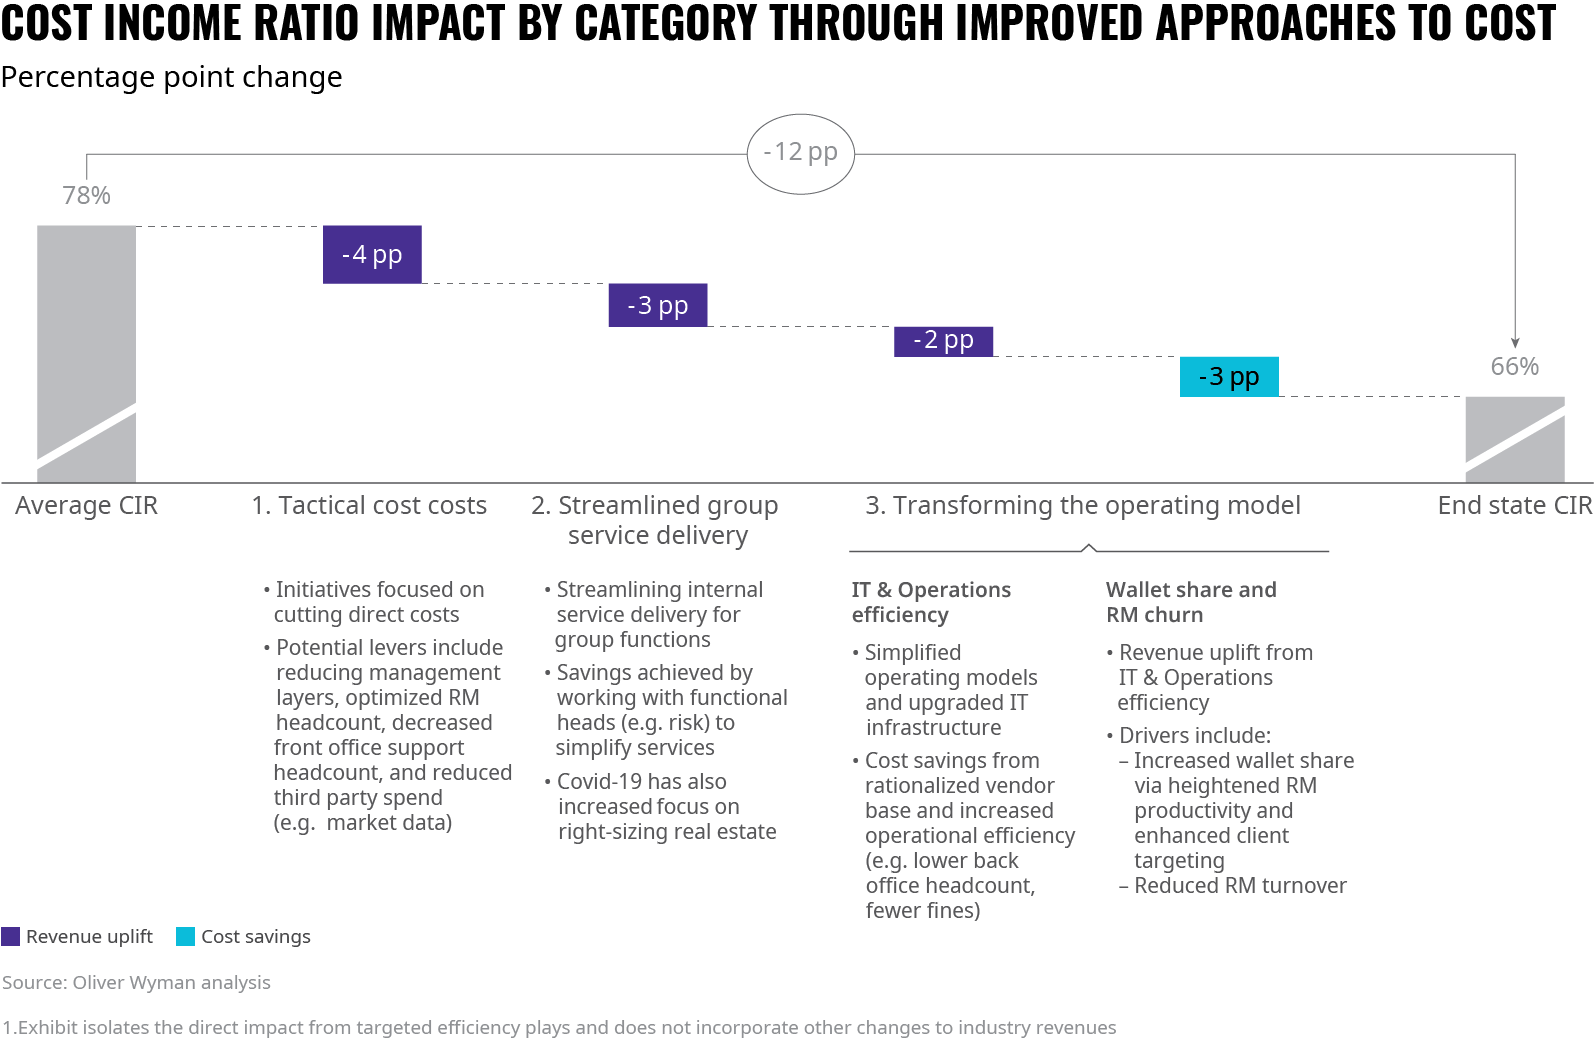 CIR Impact By Category of Cost Improvement Approaches